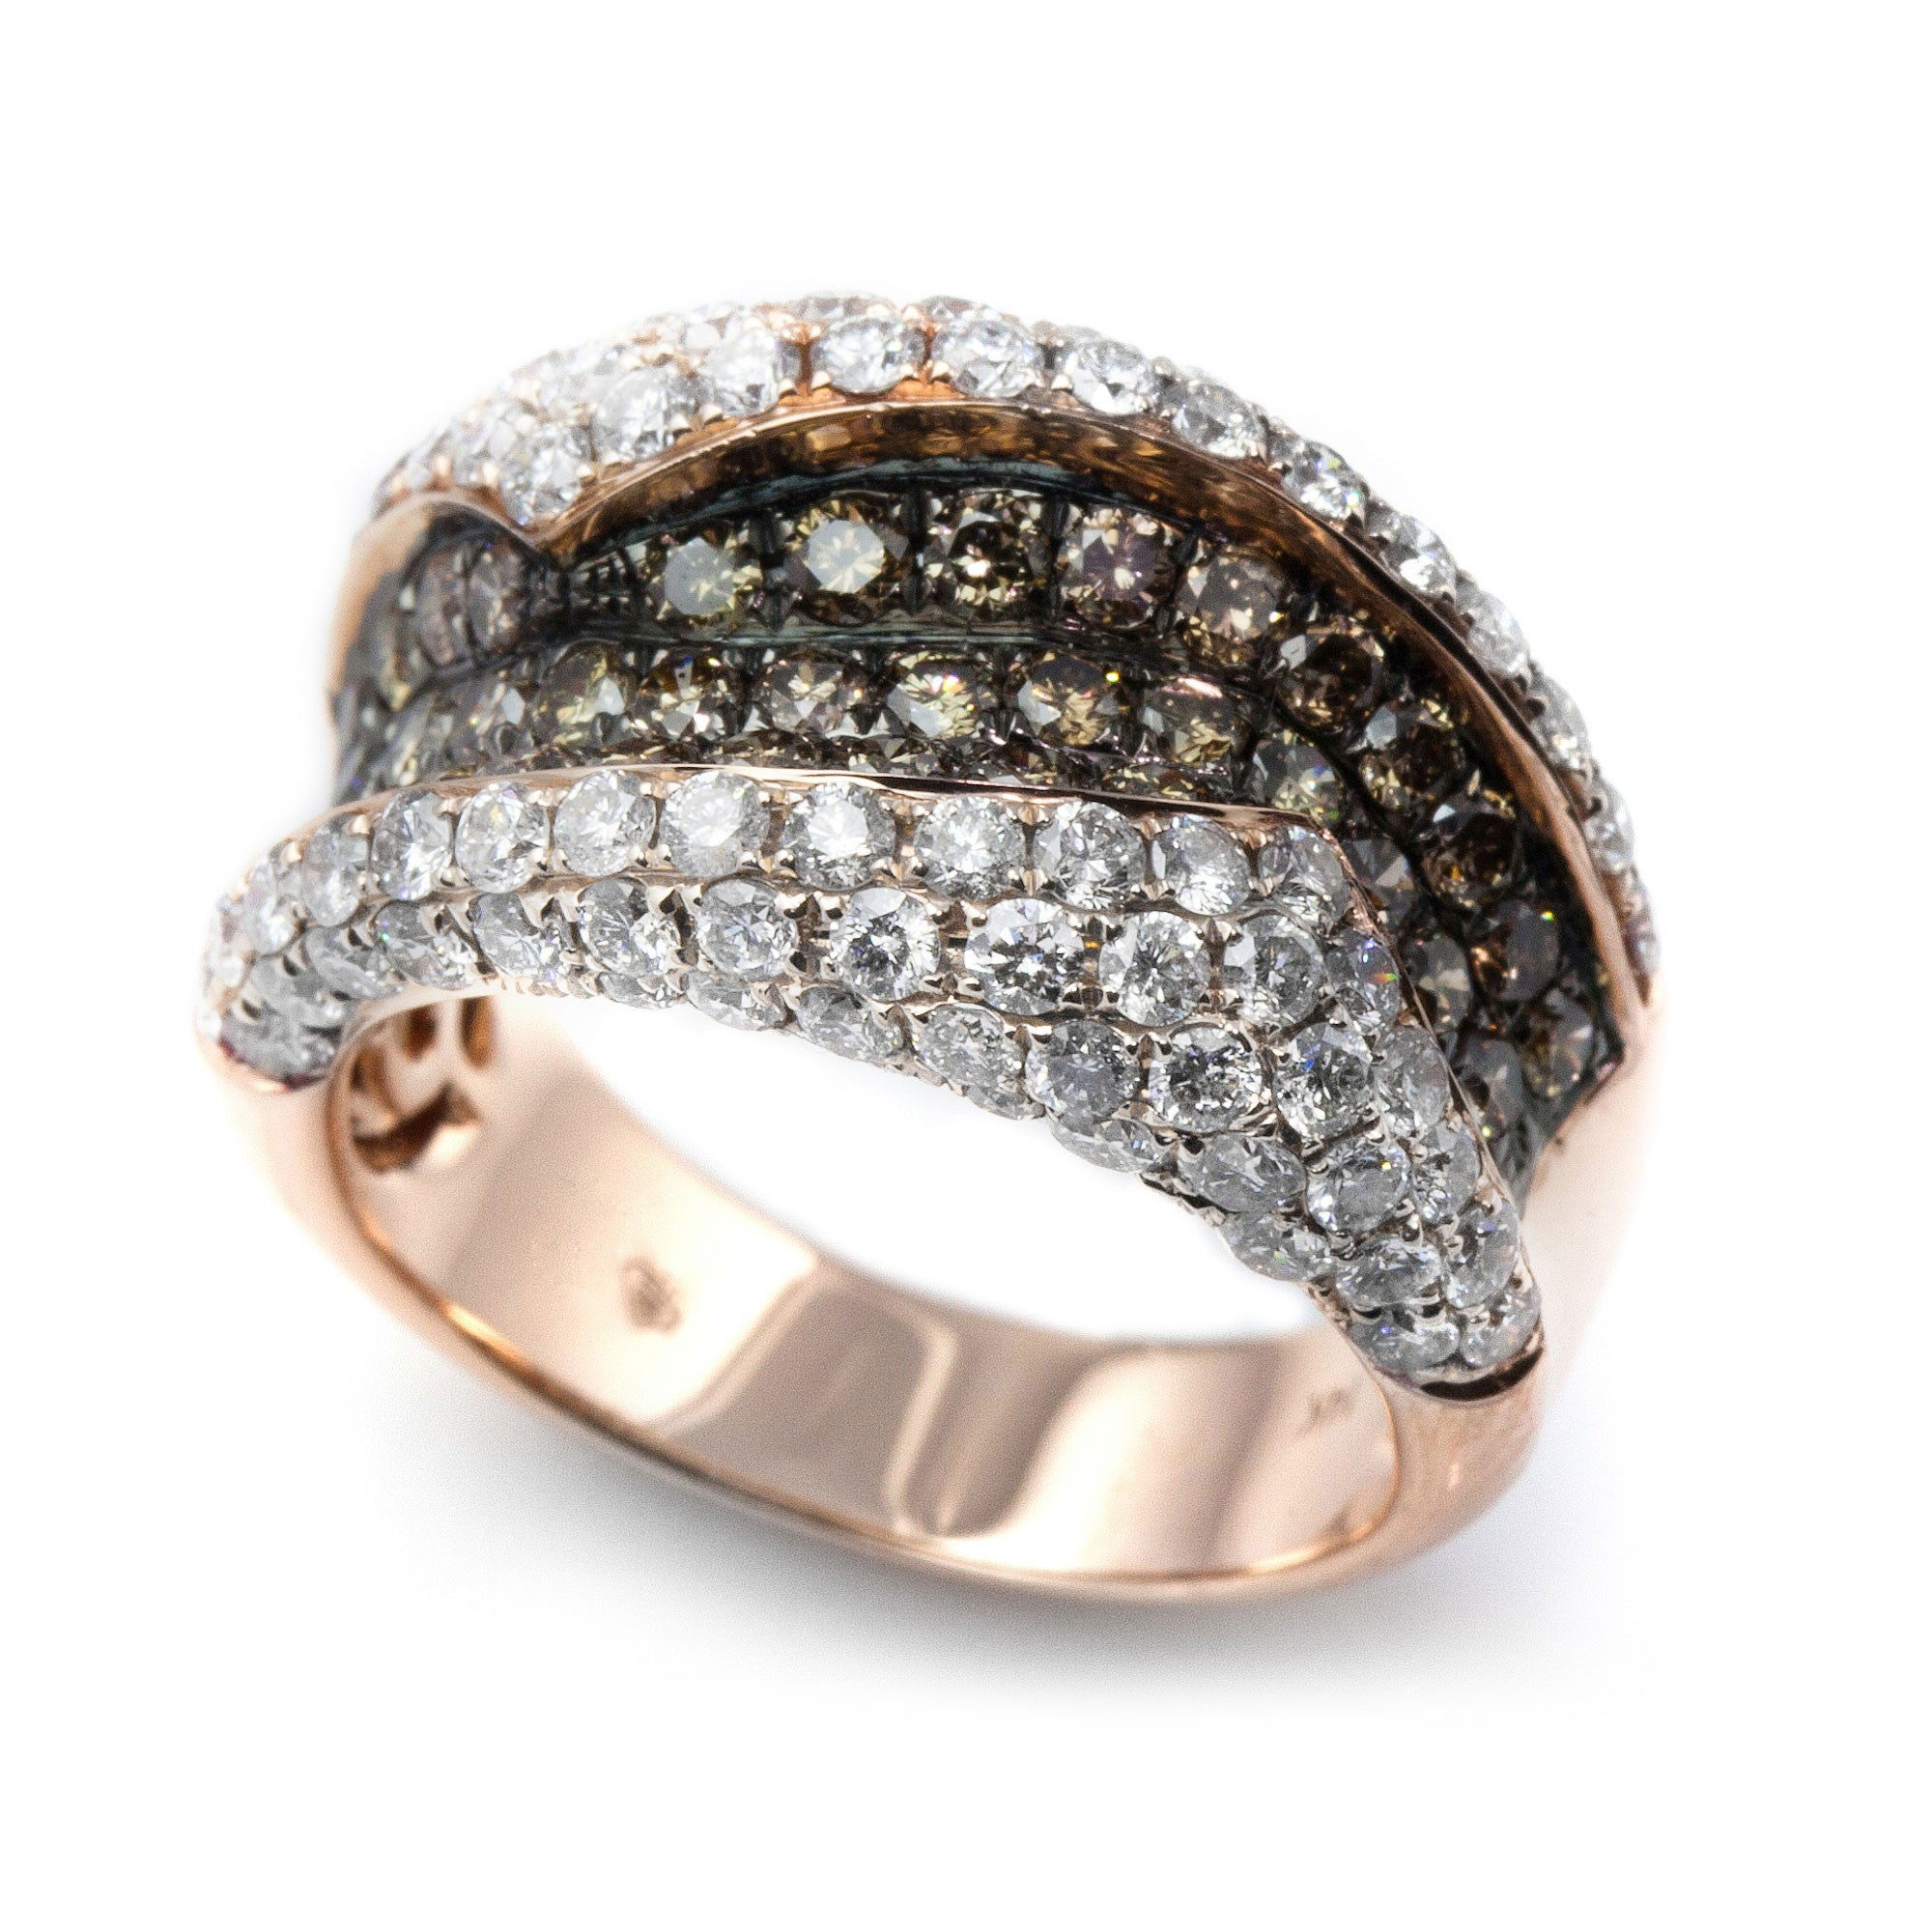 Wrapped in Champagne & White Diamonds Ring